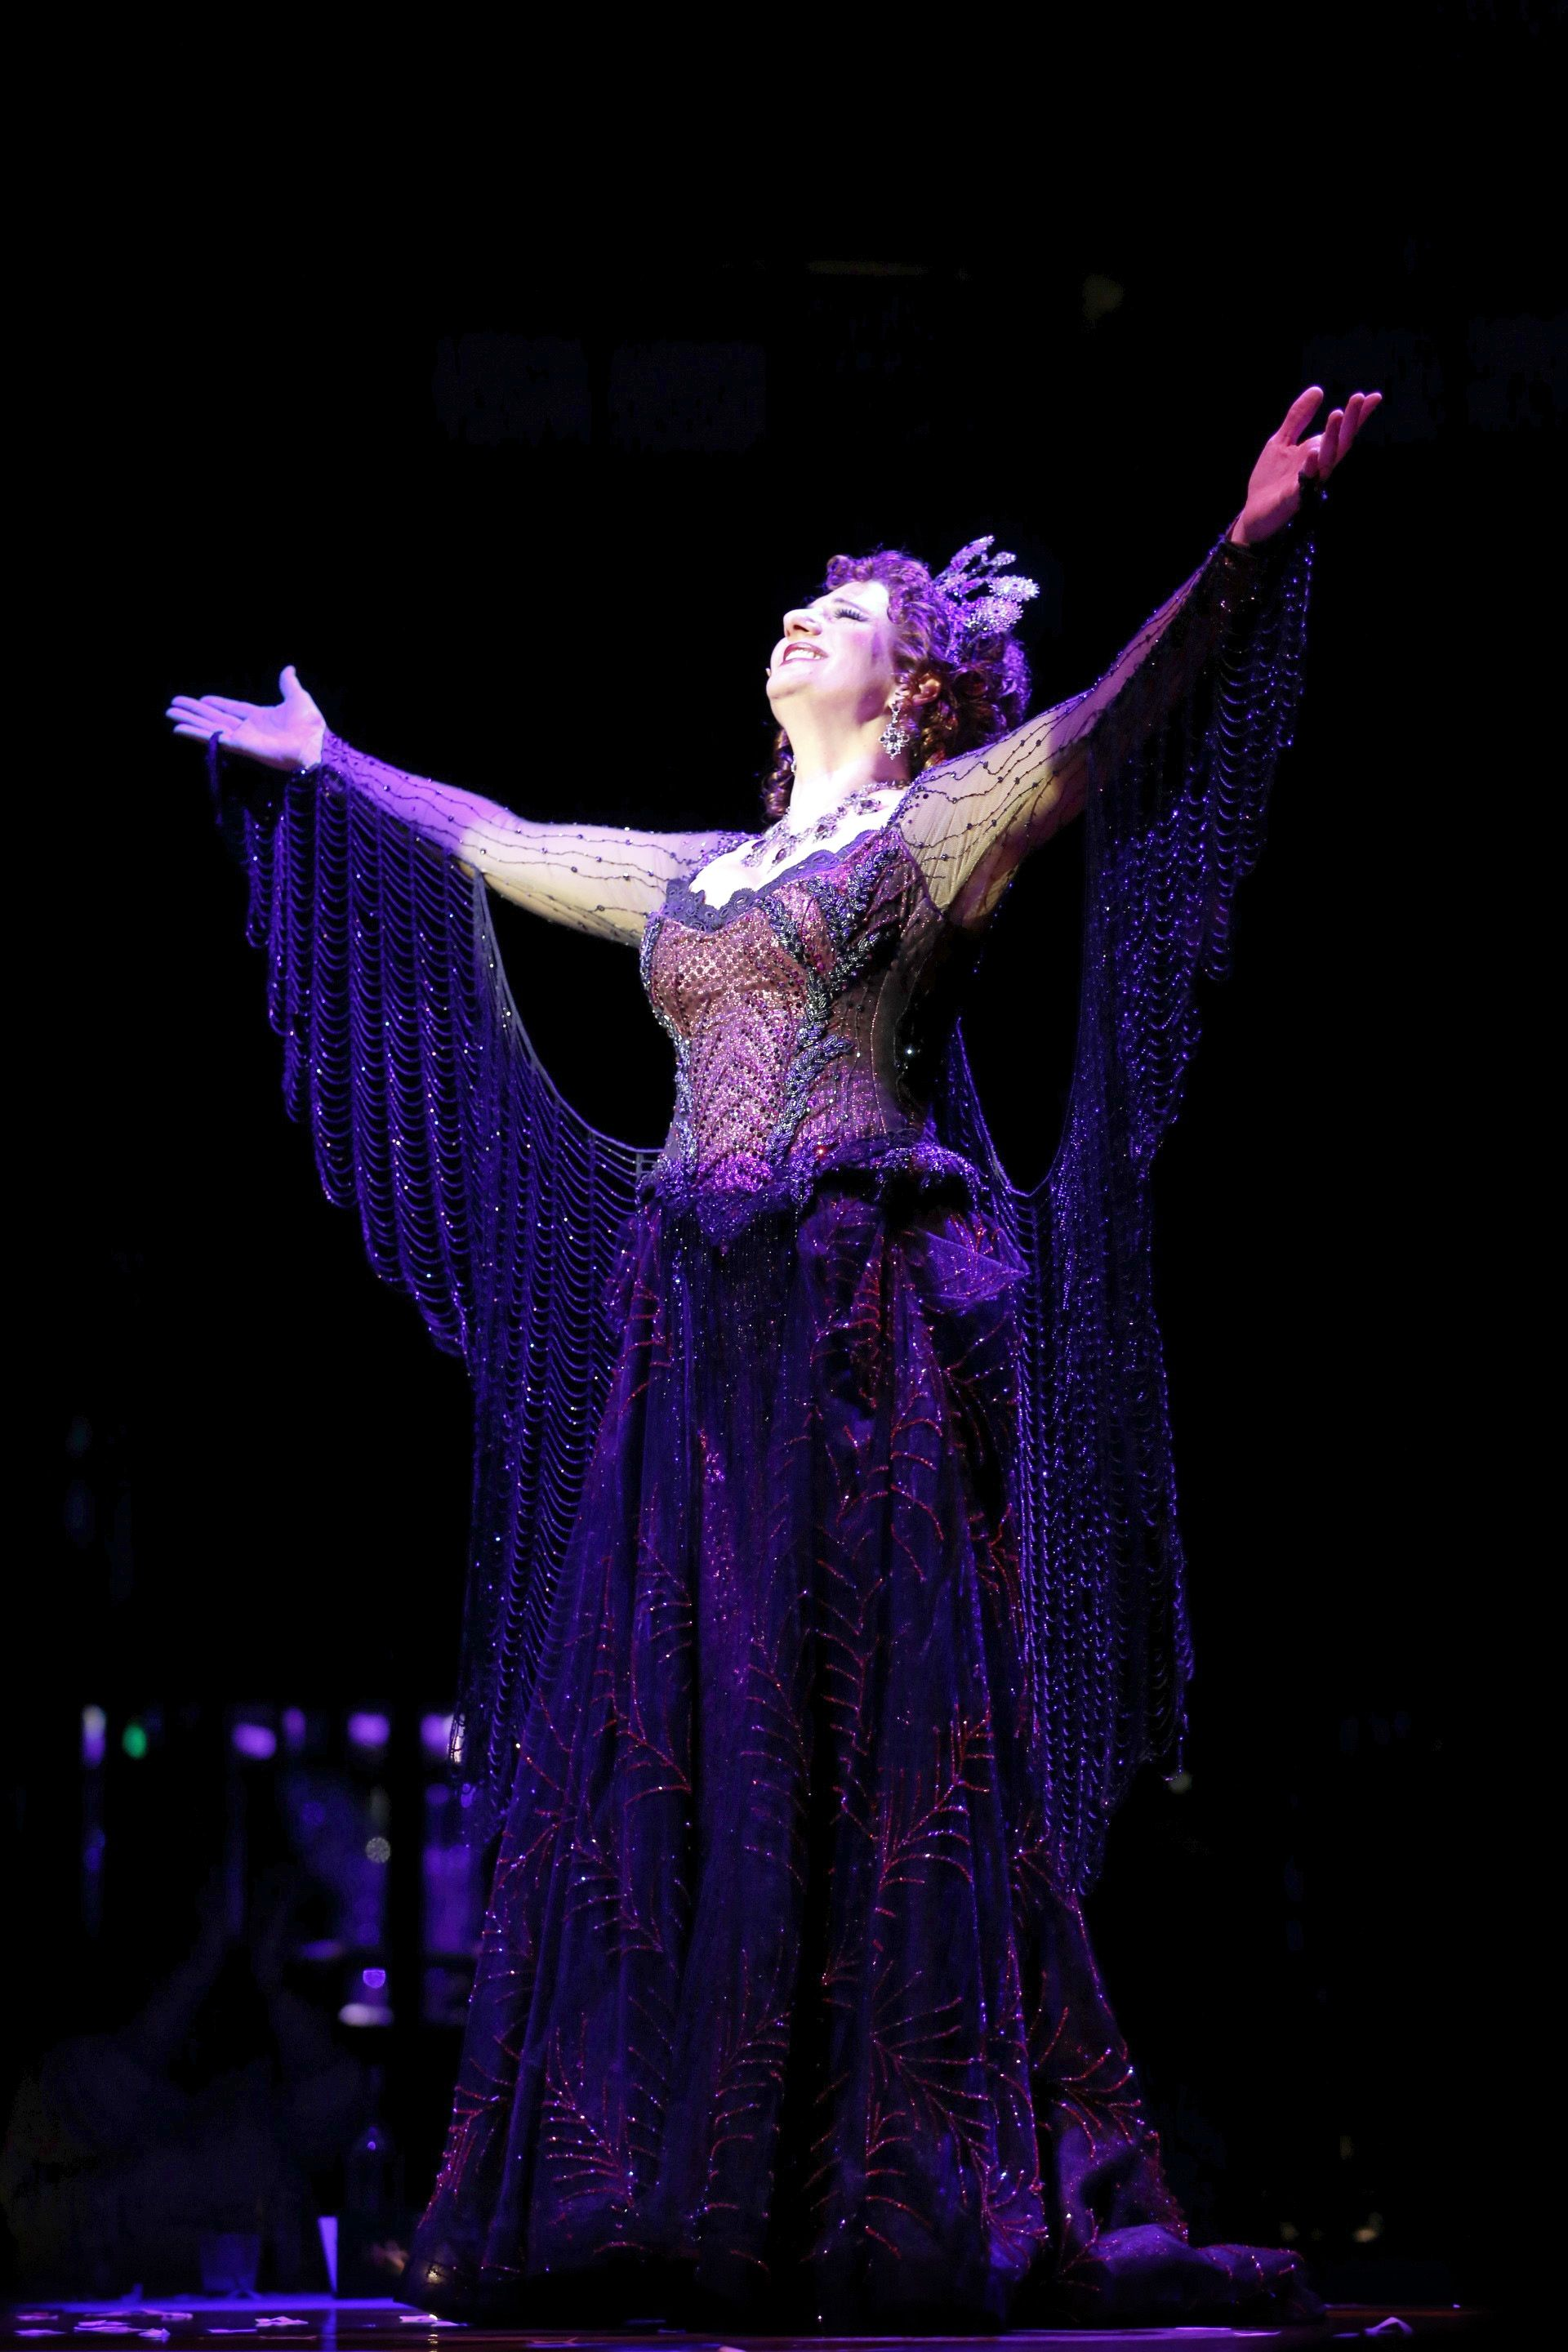 Juliana Rambaldi Our Opera Diva Take A Glorious Bow On The Air Photo Credit Keith Brofsky Singer Costumes Fantasy Fashion Air Photo